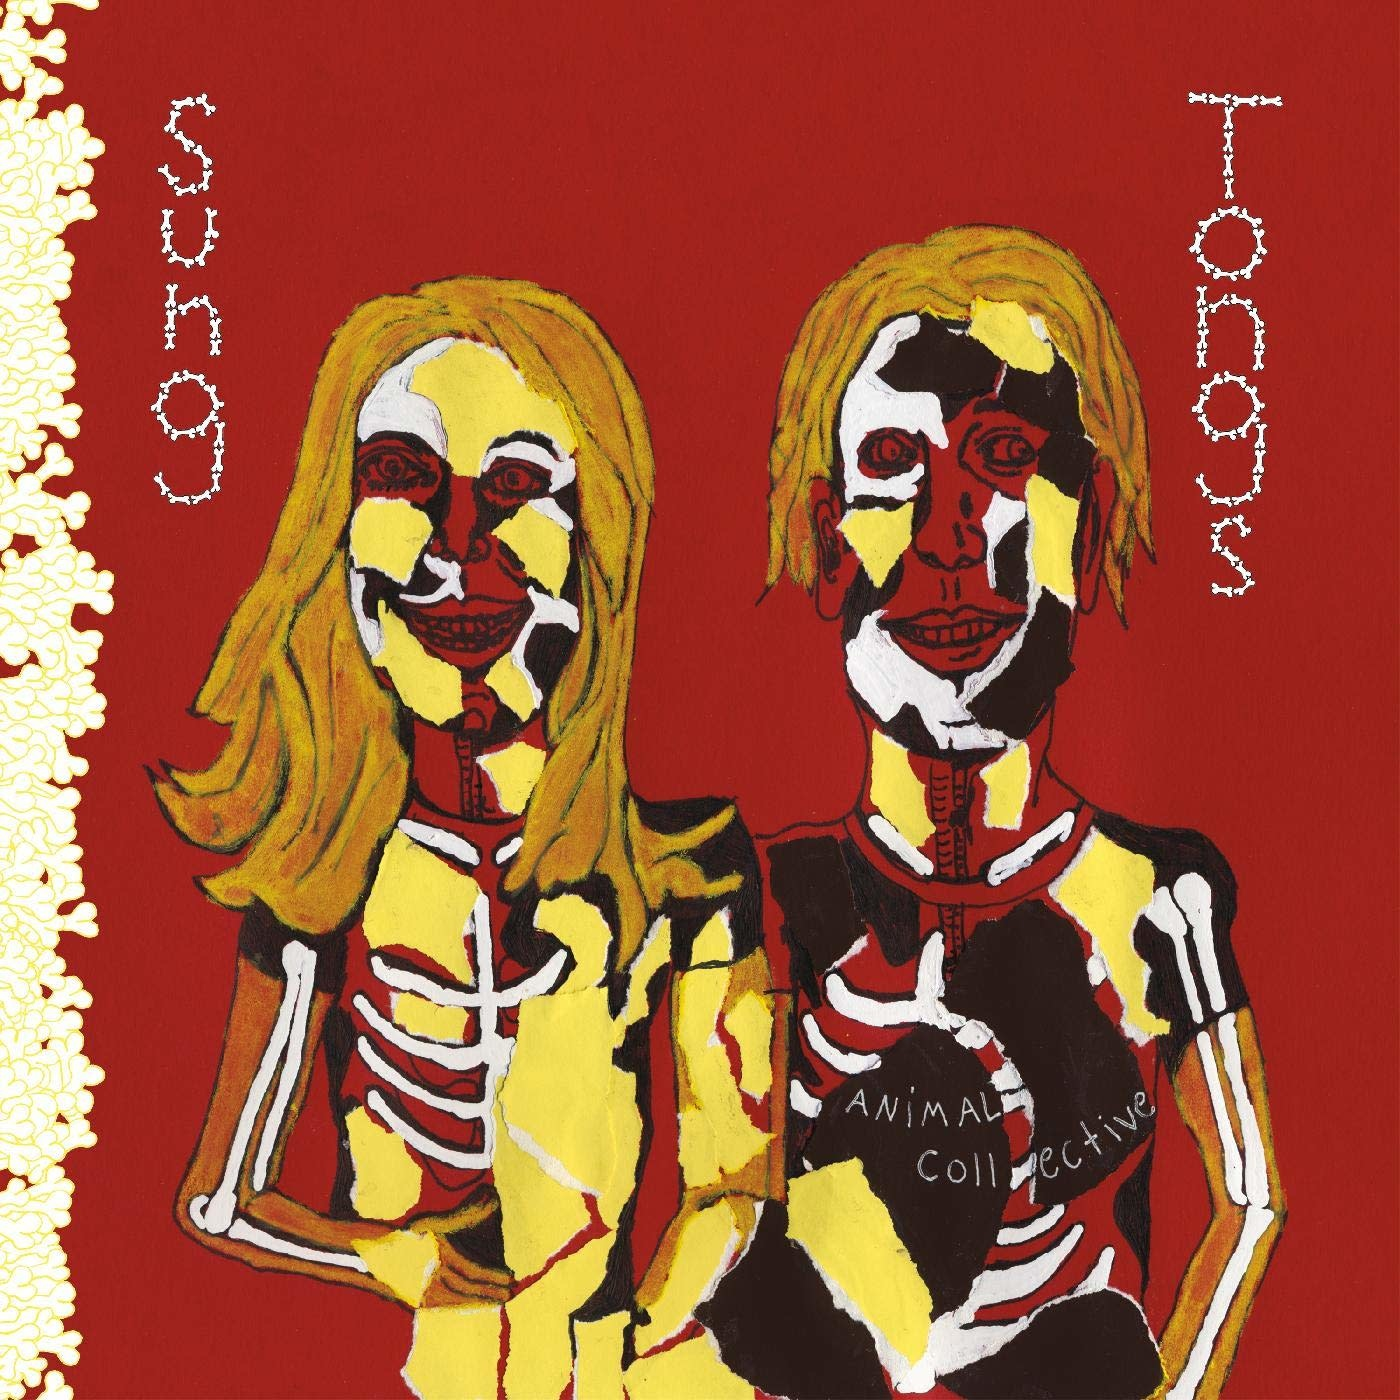 Rock/Pop Animal Collective - Sung Tongs (Domino 2021 Reissue)